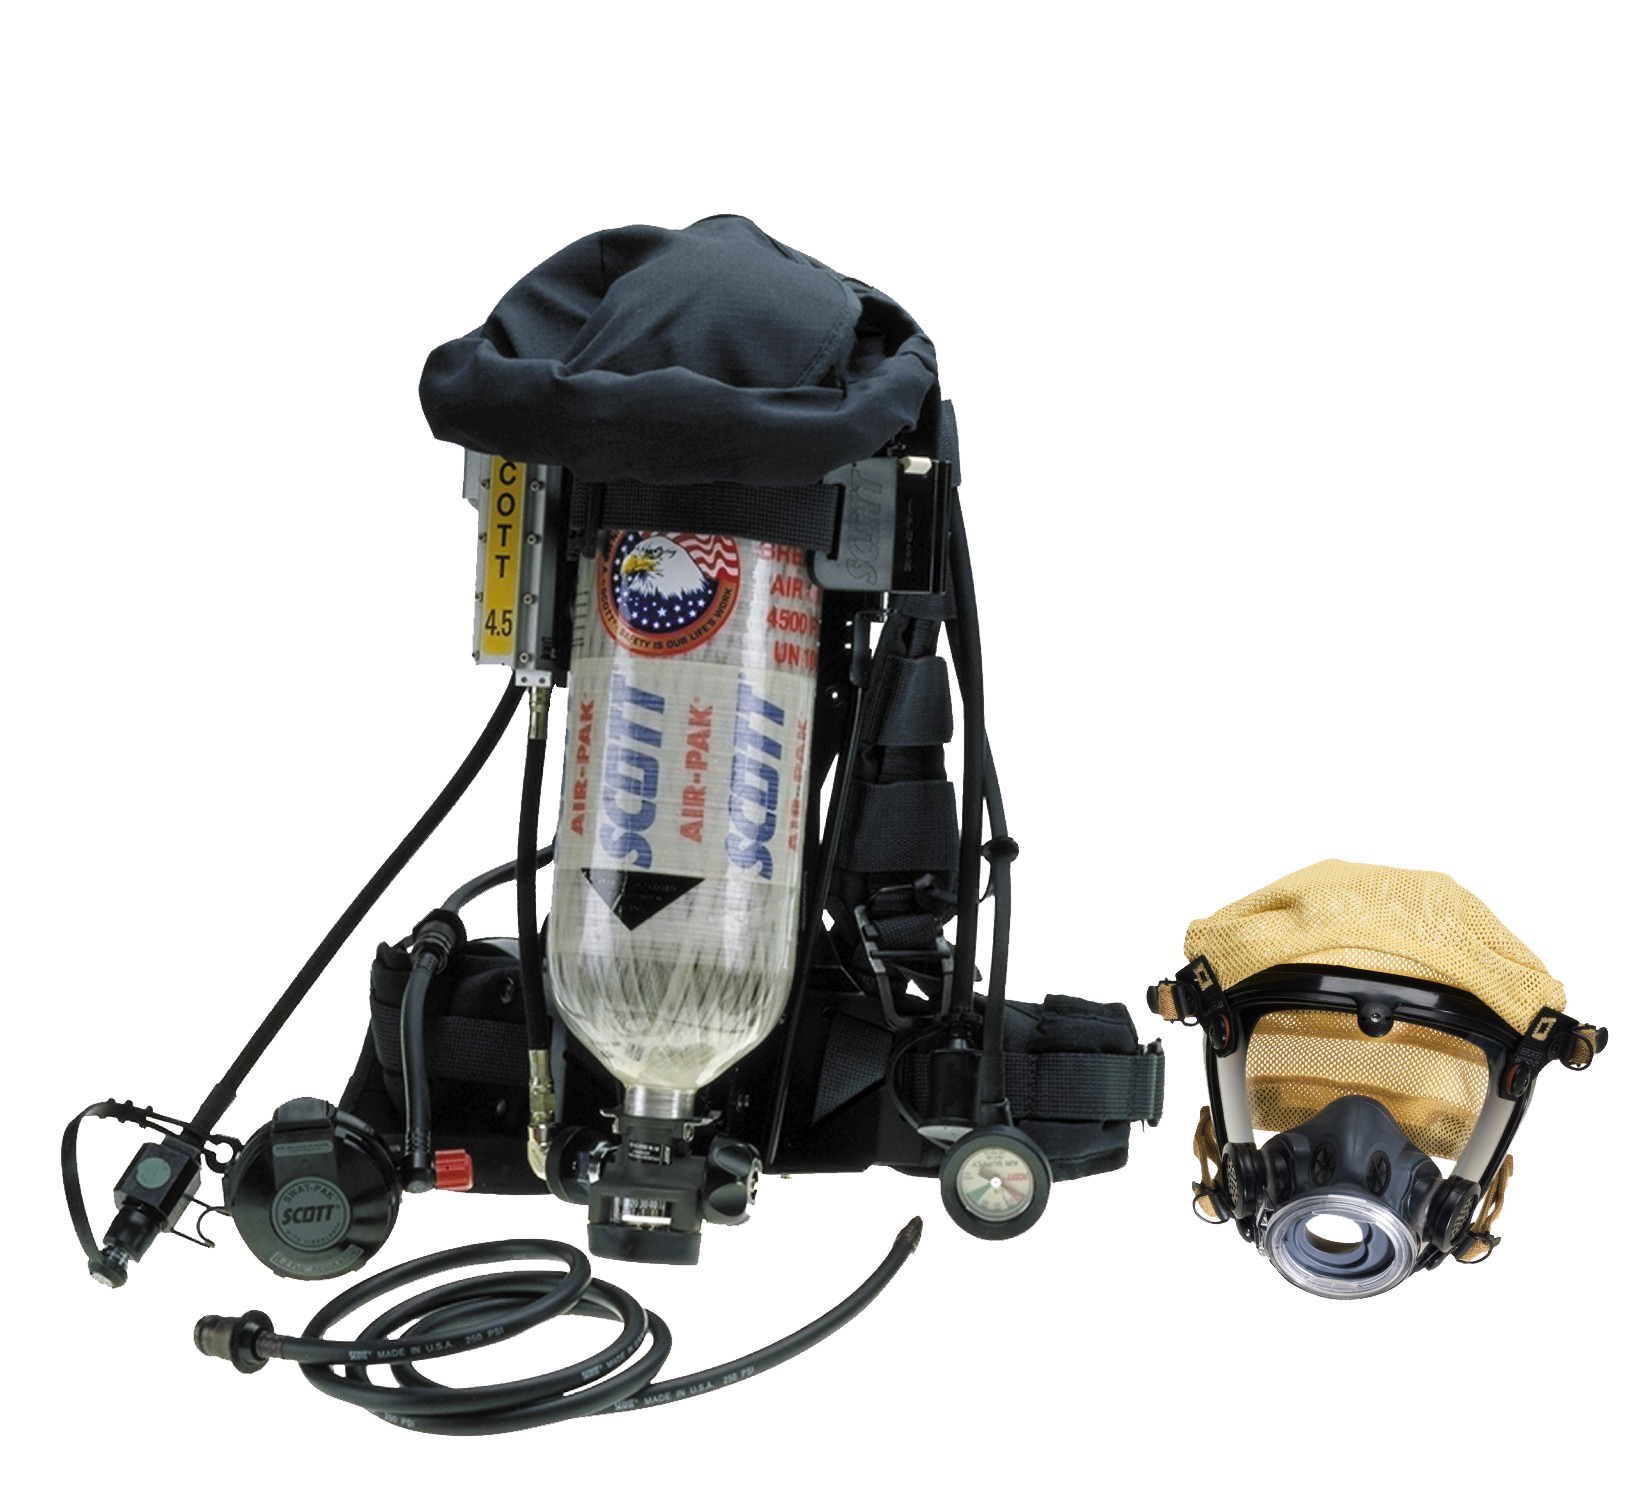 SWAT-PAK SCBA| Protective Safety Equipment – SOS Safety Int